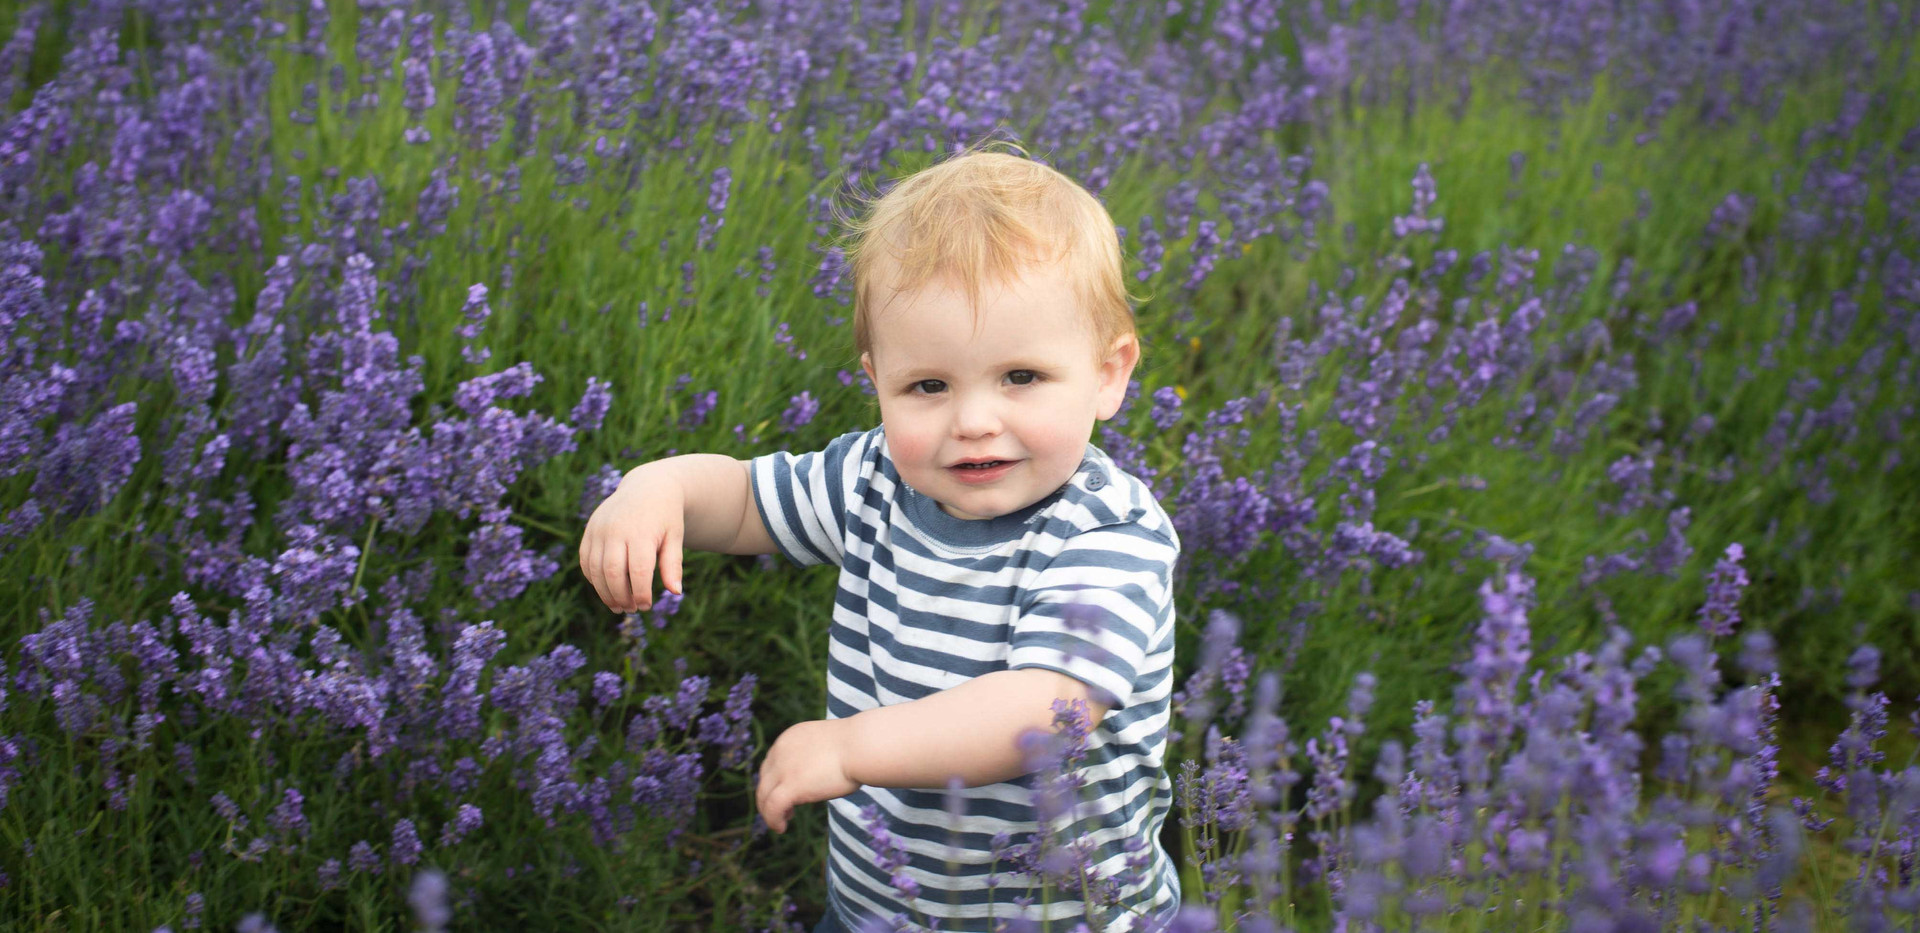 Toddler In The Lavender